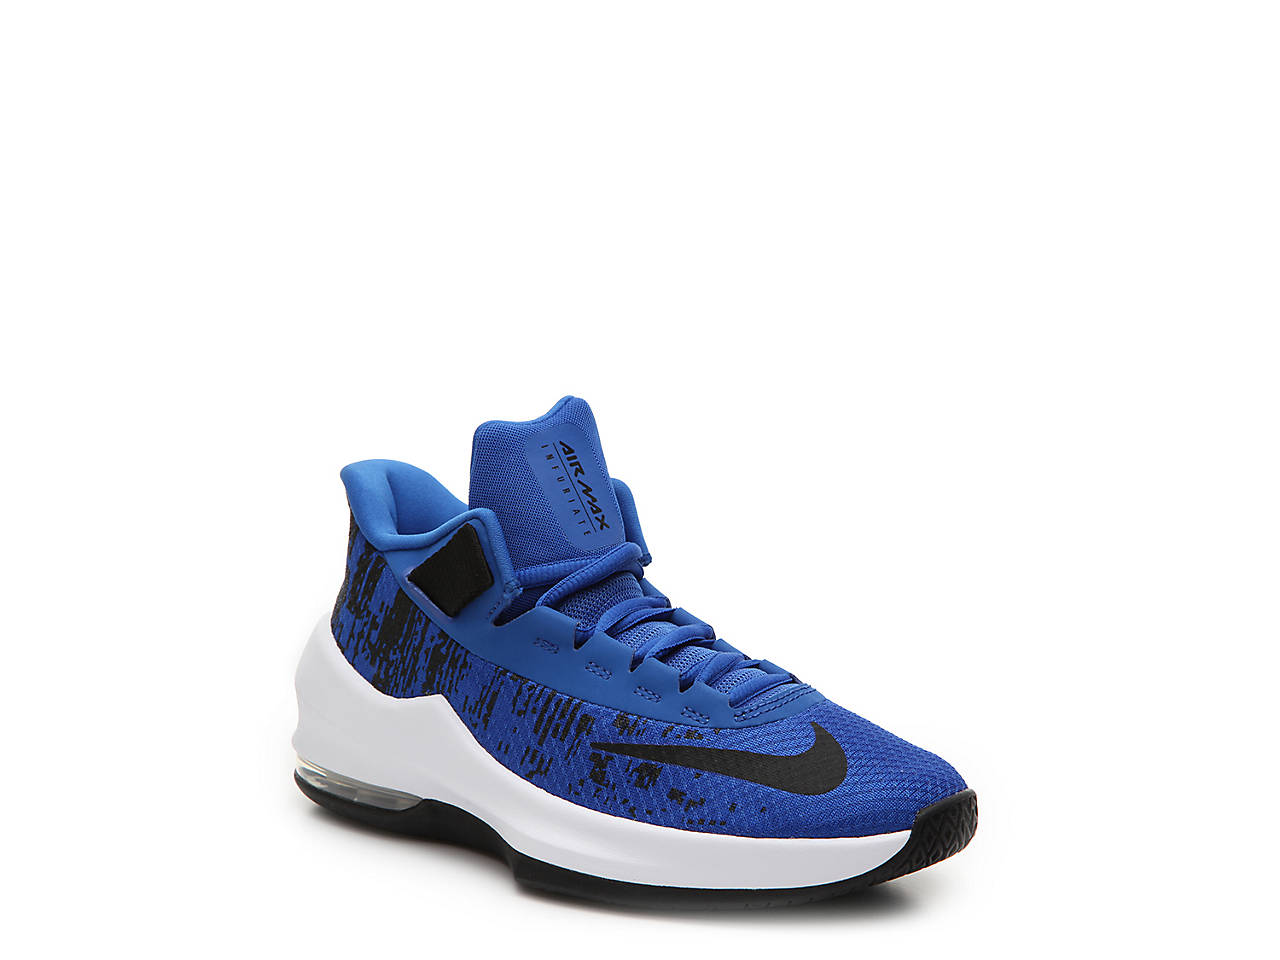 a1d1d1c3c5 Nike Air Max Infuriate 2 Youth Sneaker Kids Shoes   DSW